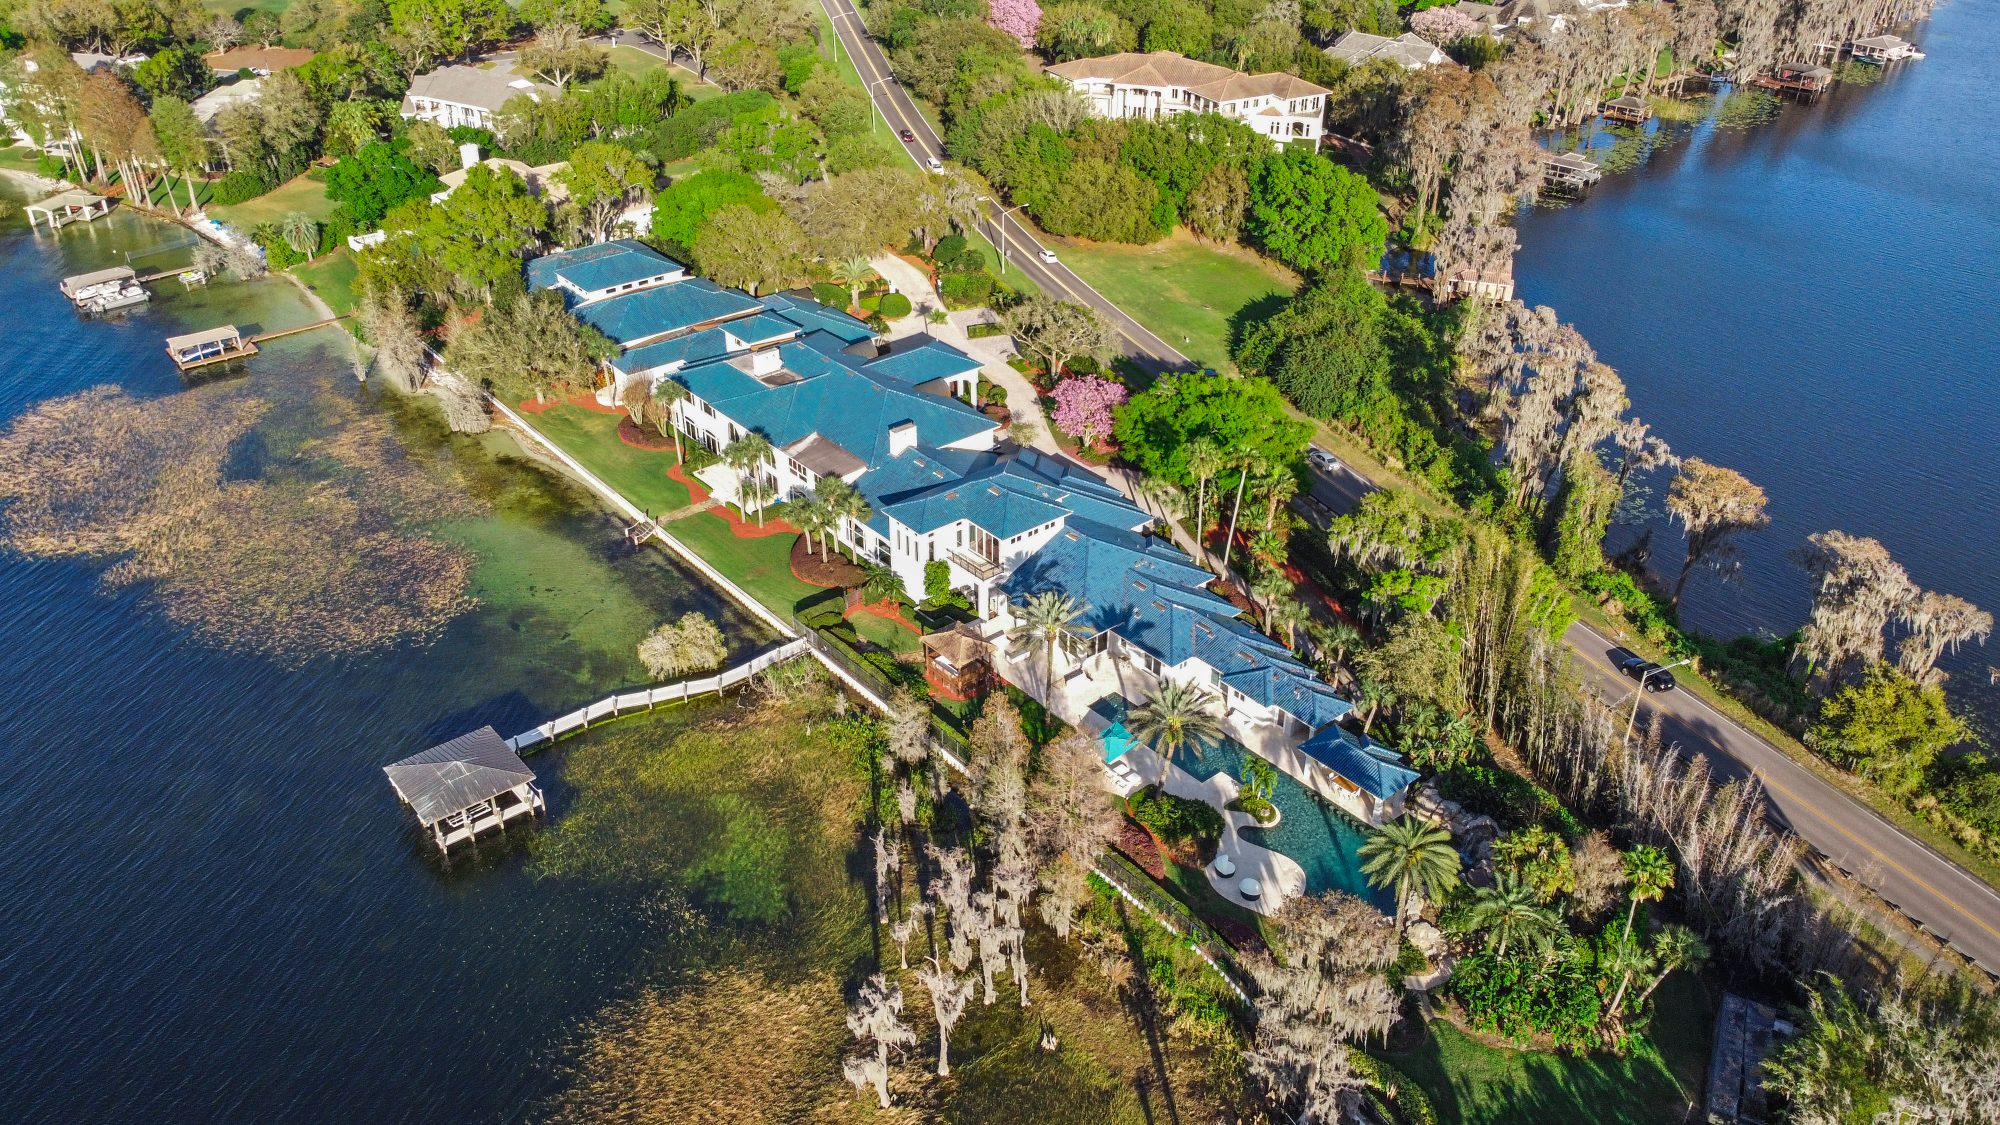 SHAQUILLE O'NEAL'S FLORIDA MANSION 10